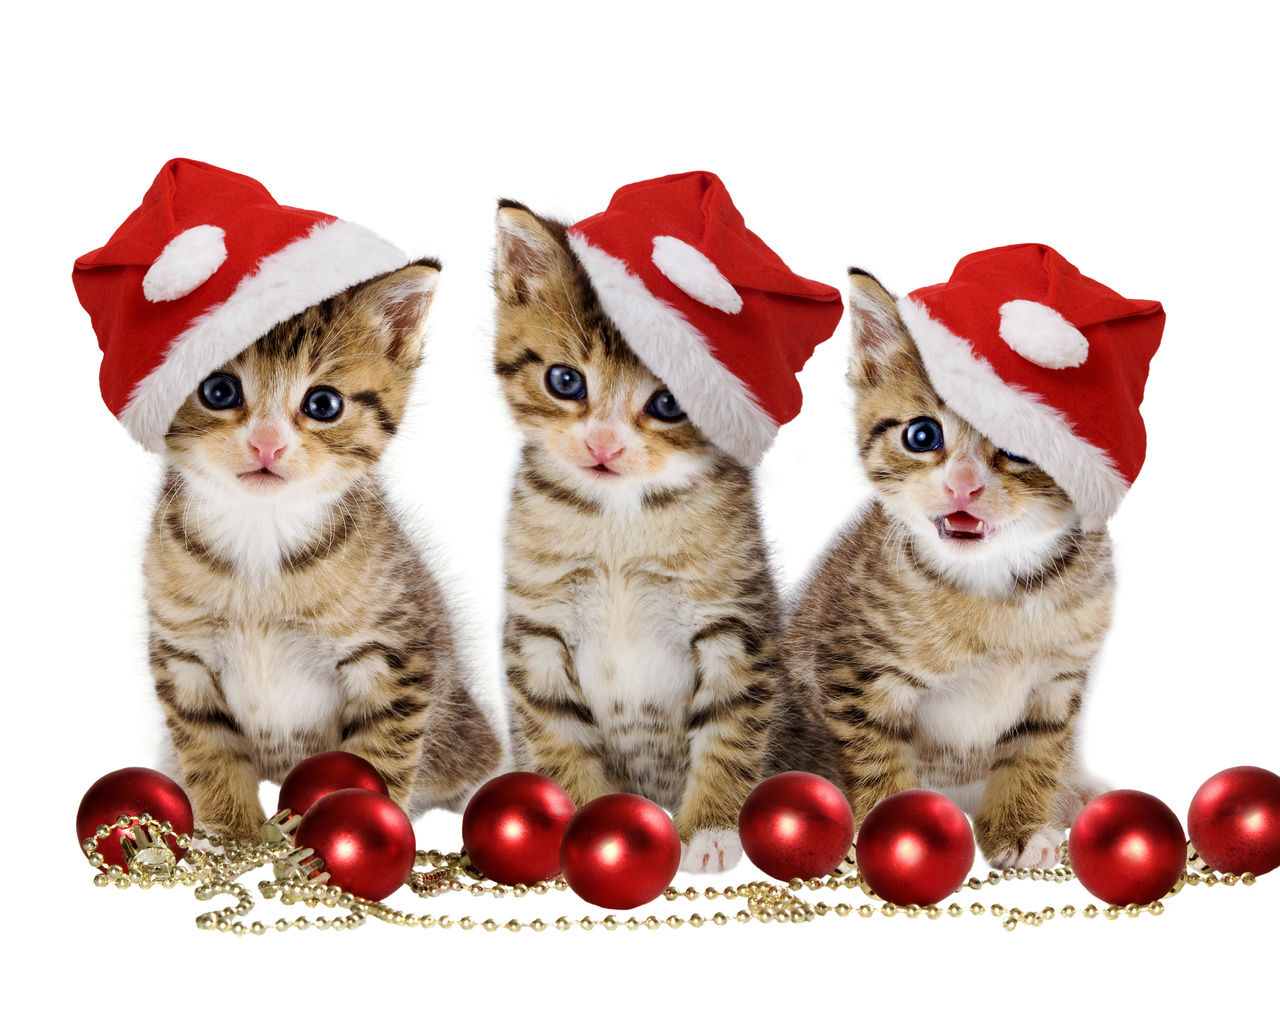 Kitten wallpaper wallpapers for free download about 3011